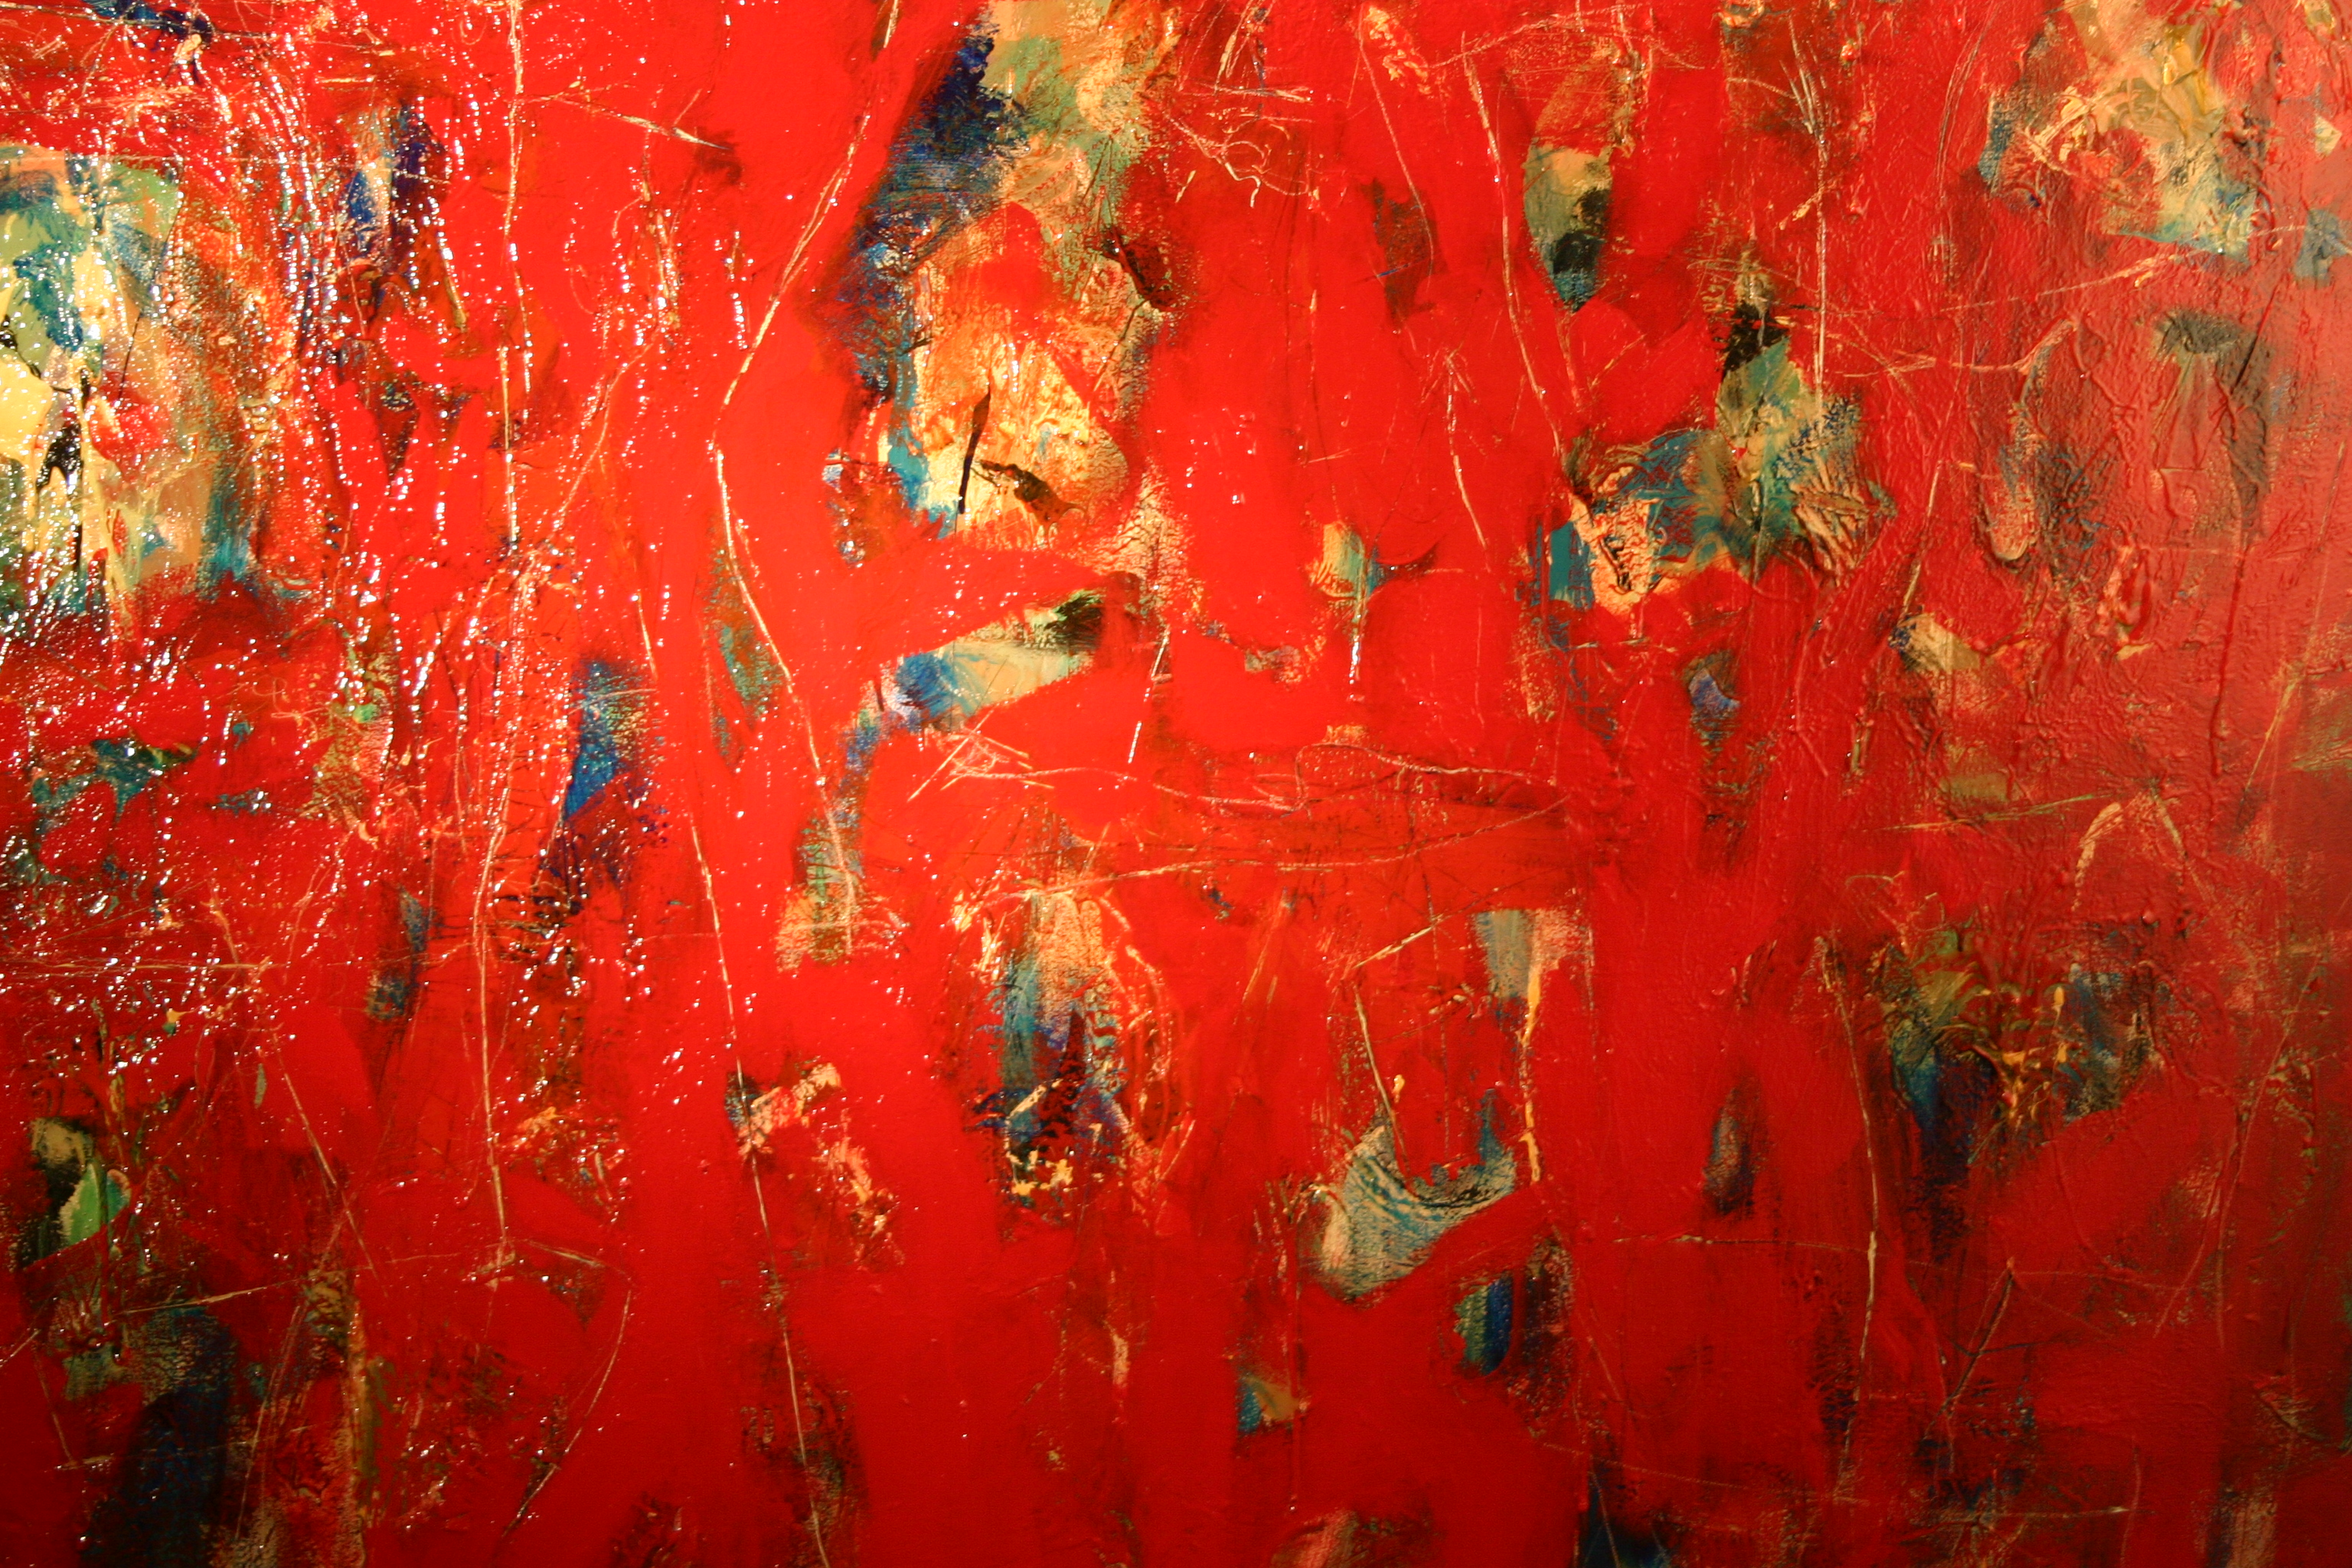 Go to the Untitled (Abstract Red Painting) page